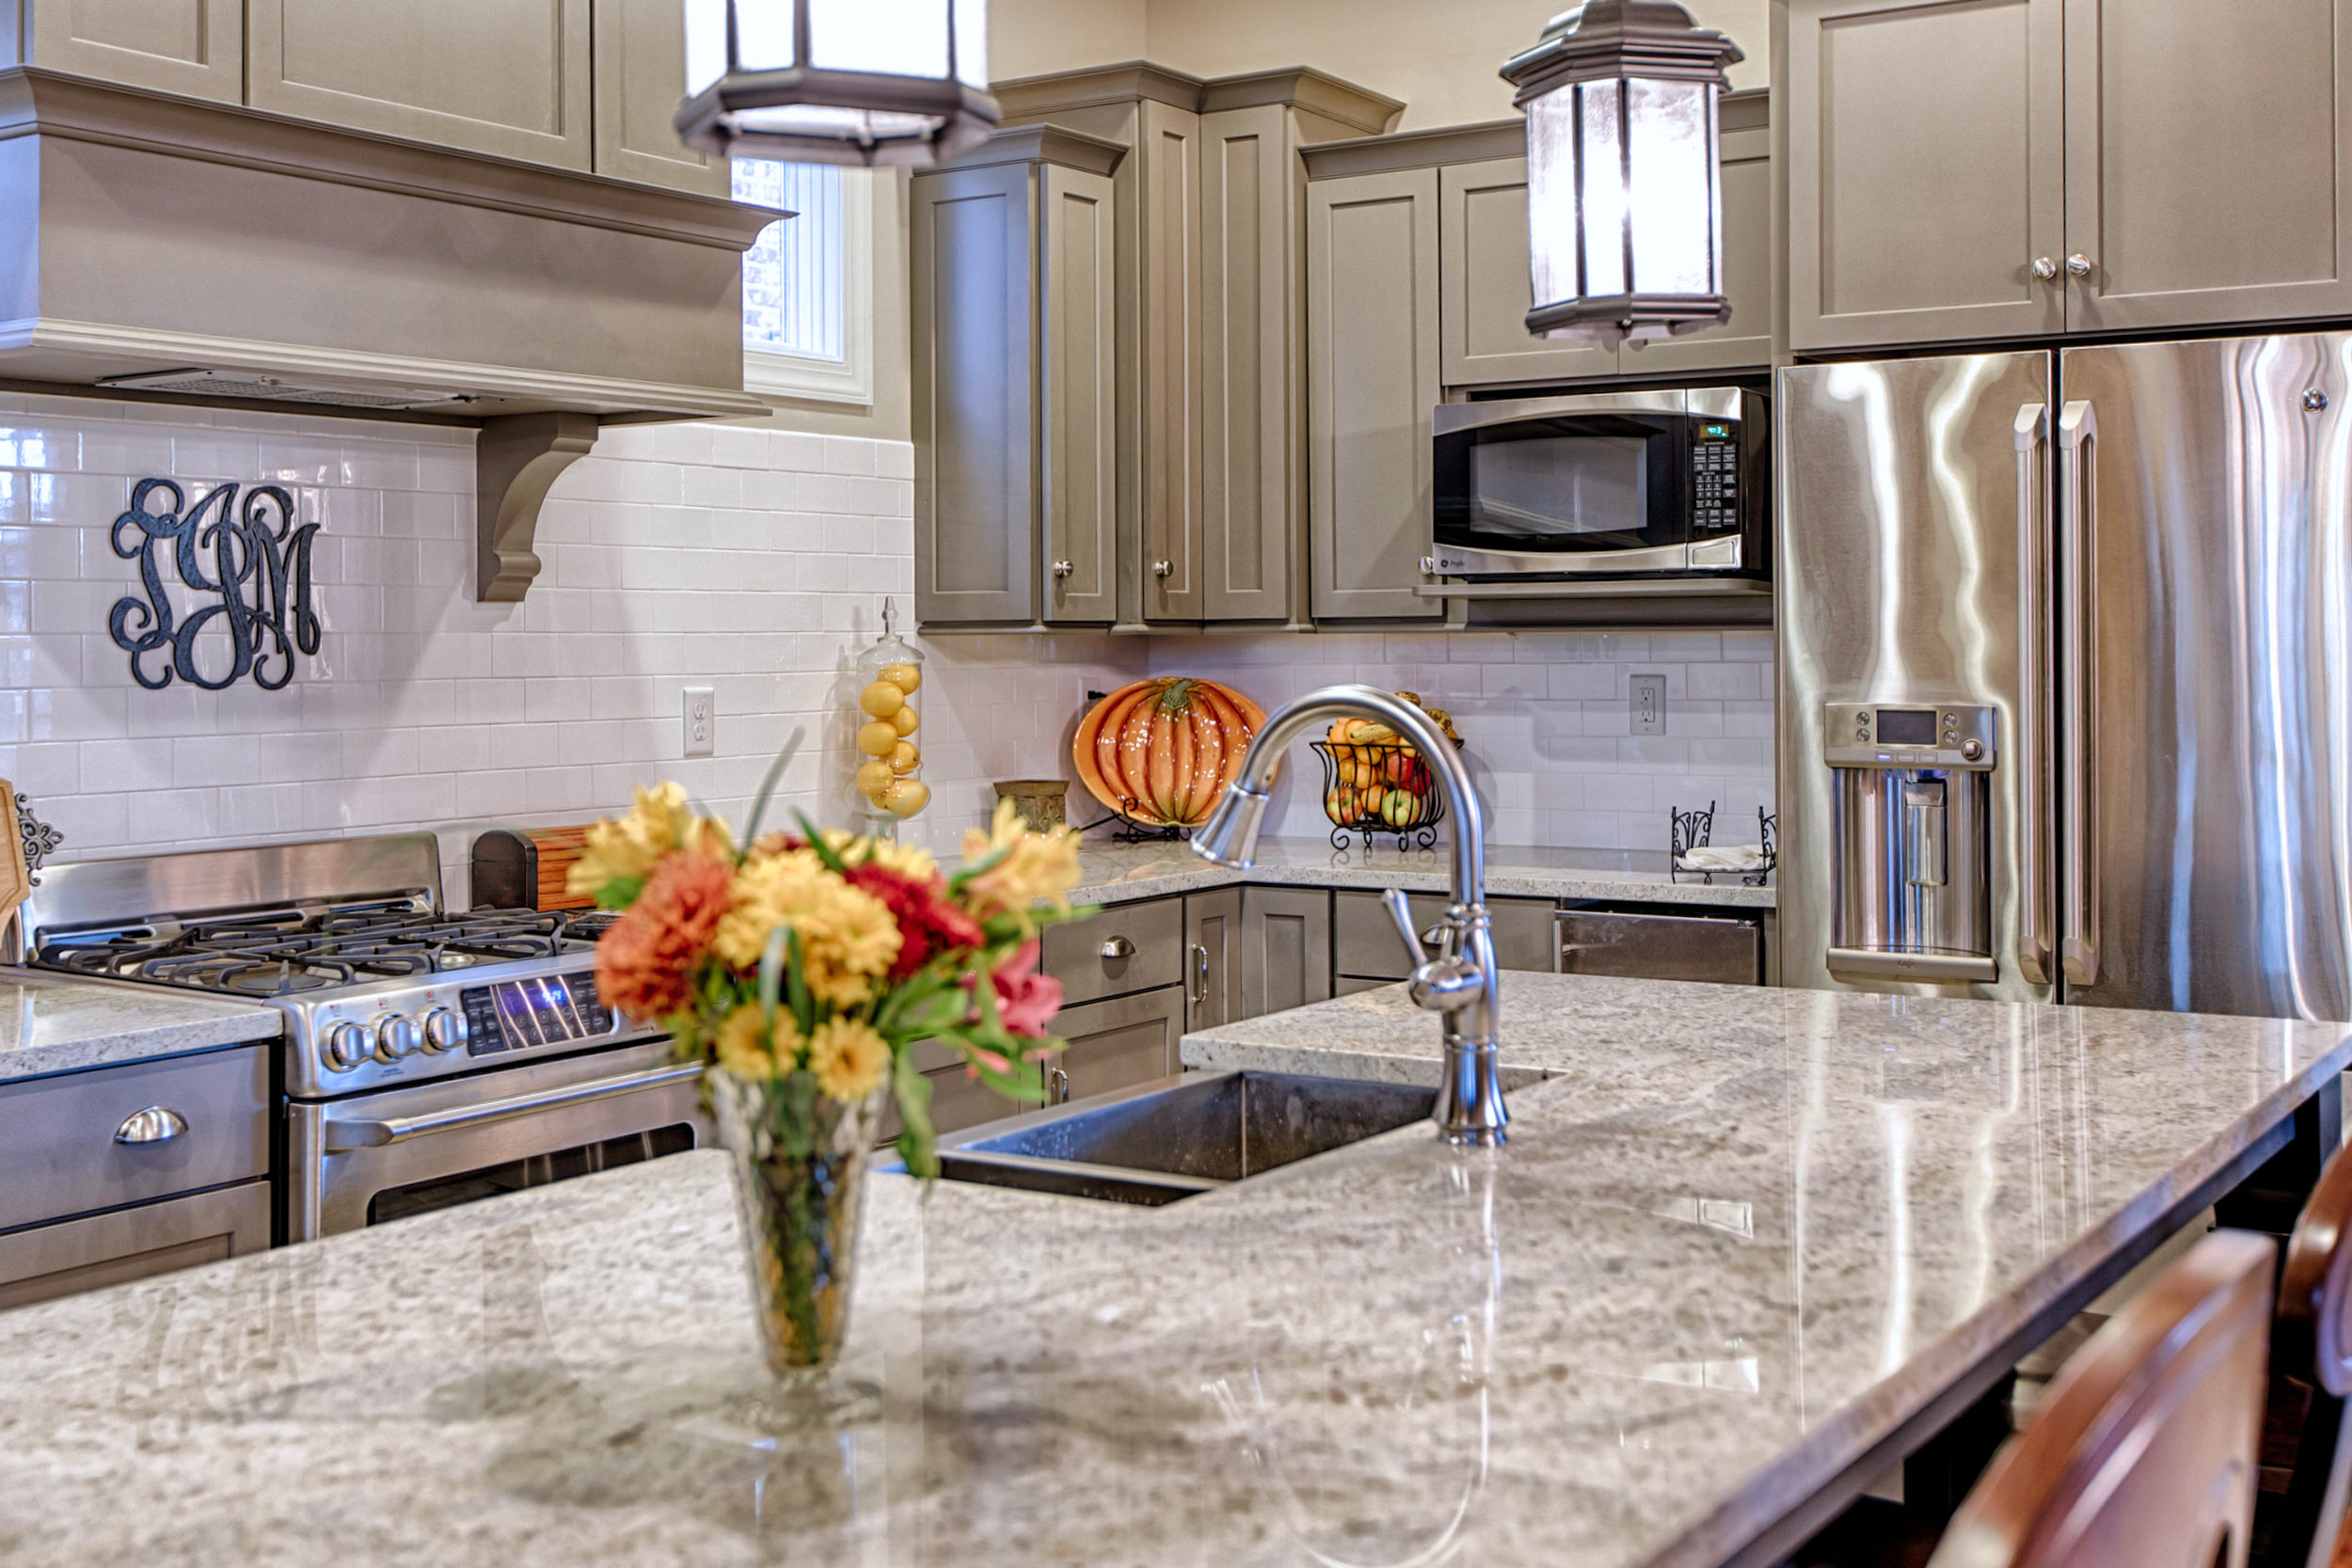 The apron front farmhouse sink sits within the granite countertop island.